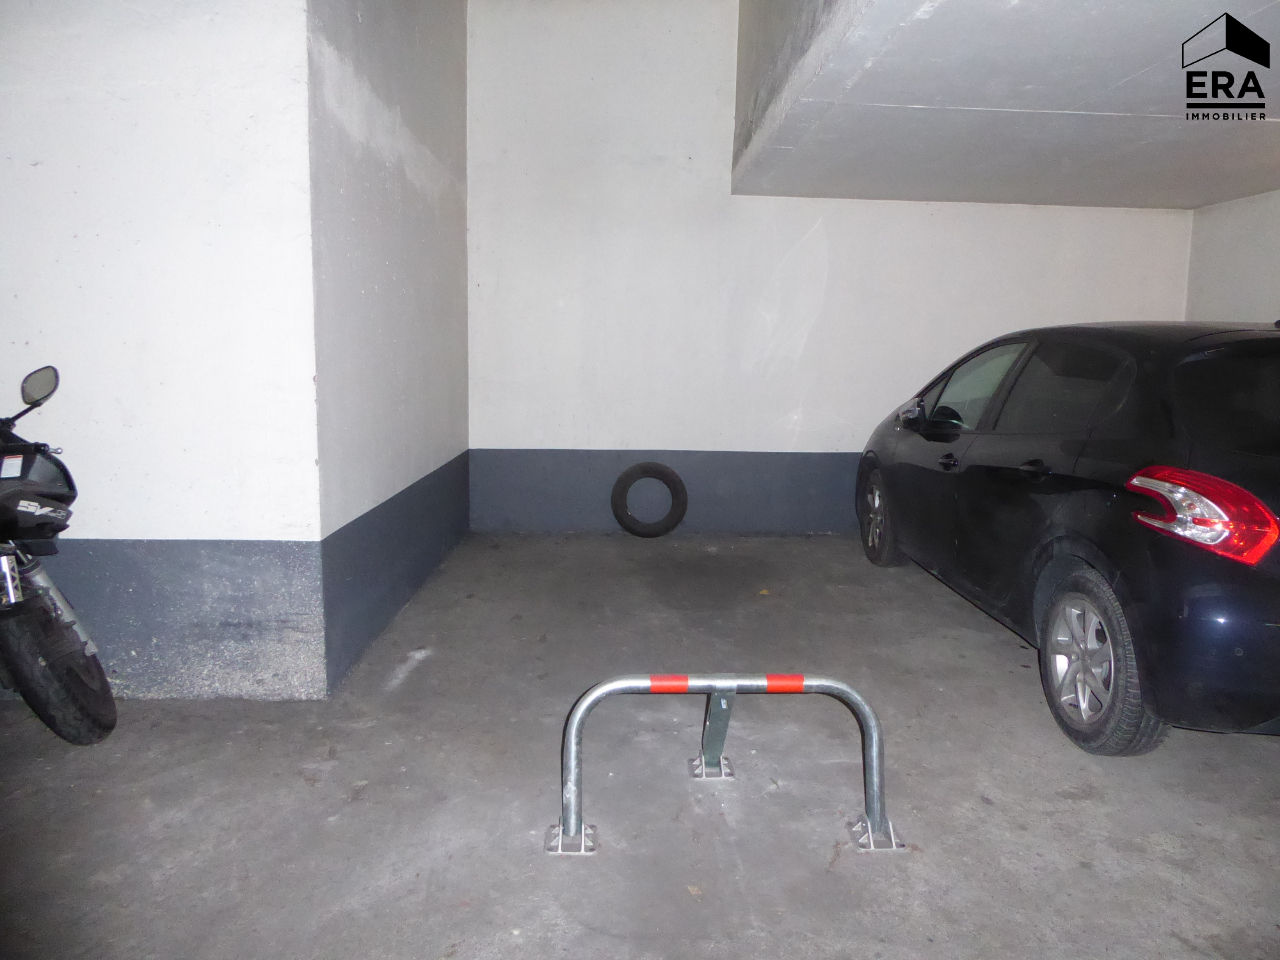 A LOUER PLACE DE PARKING COURBEVOIE-BECON